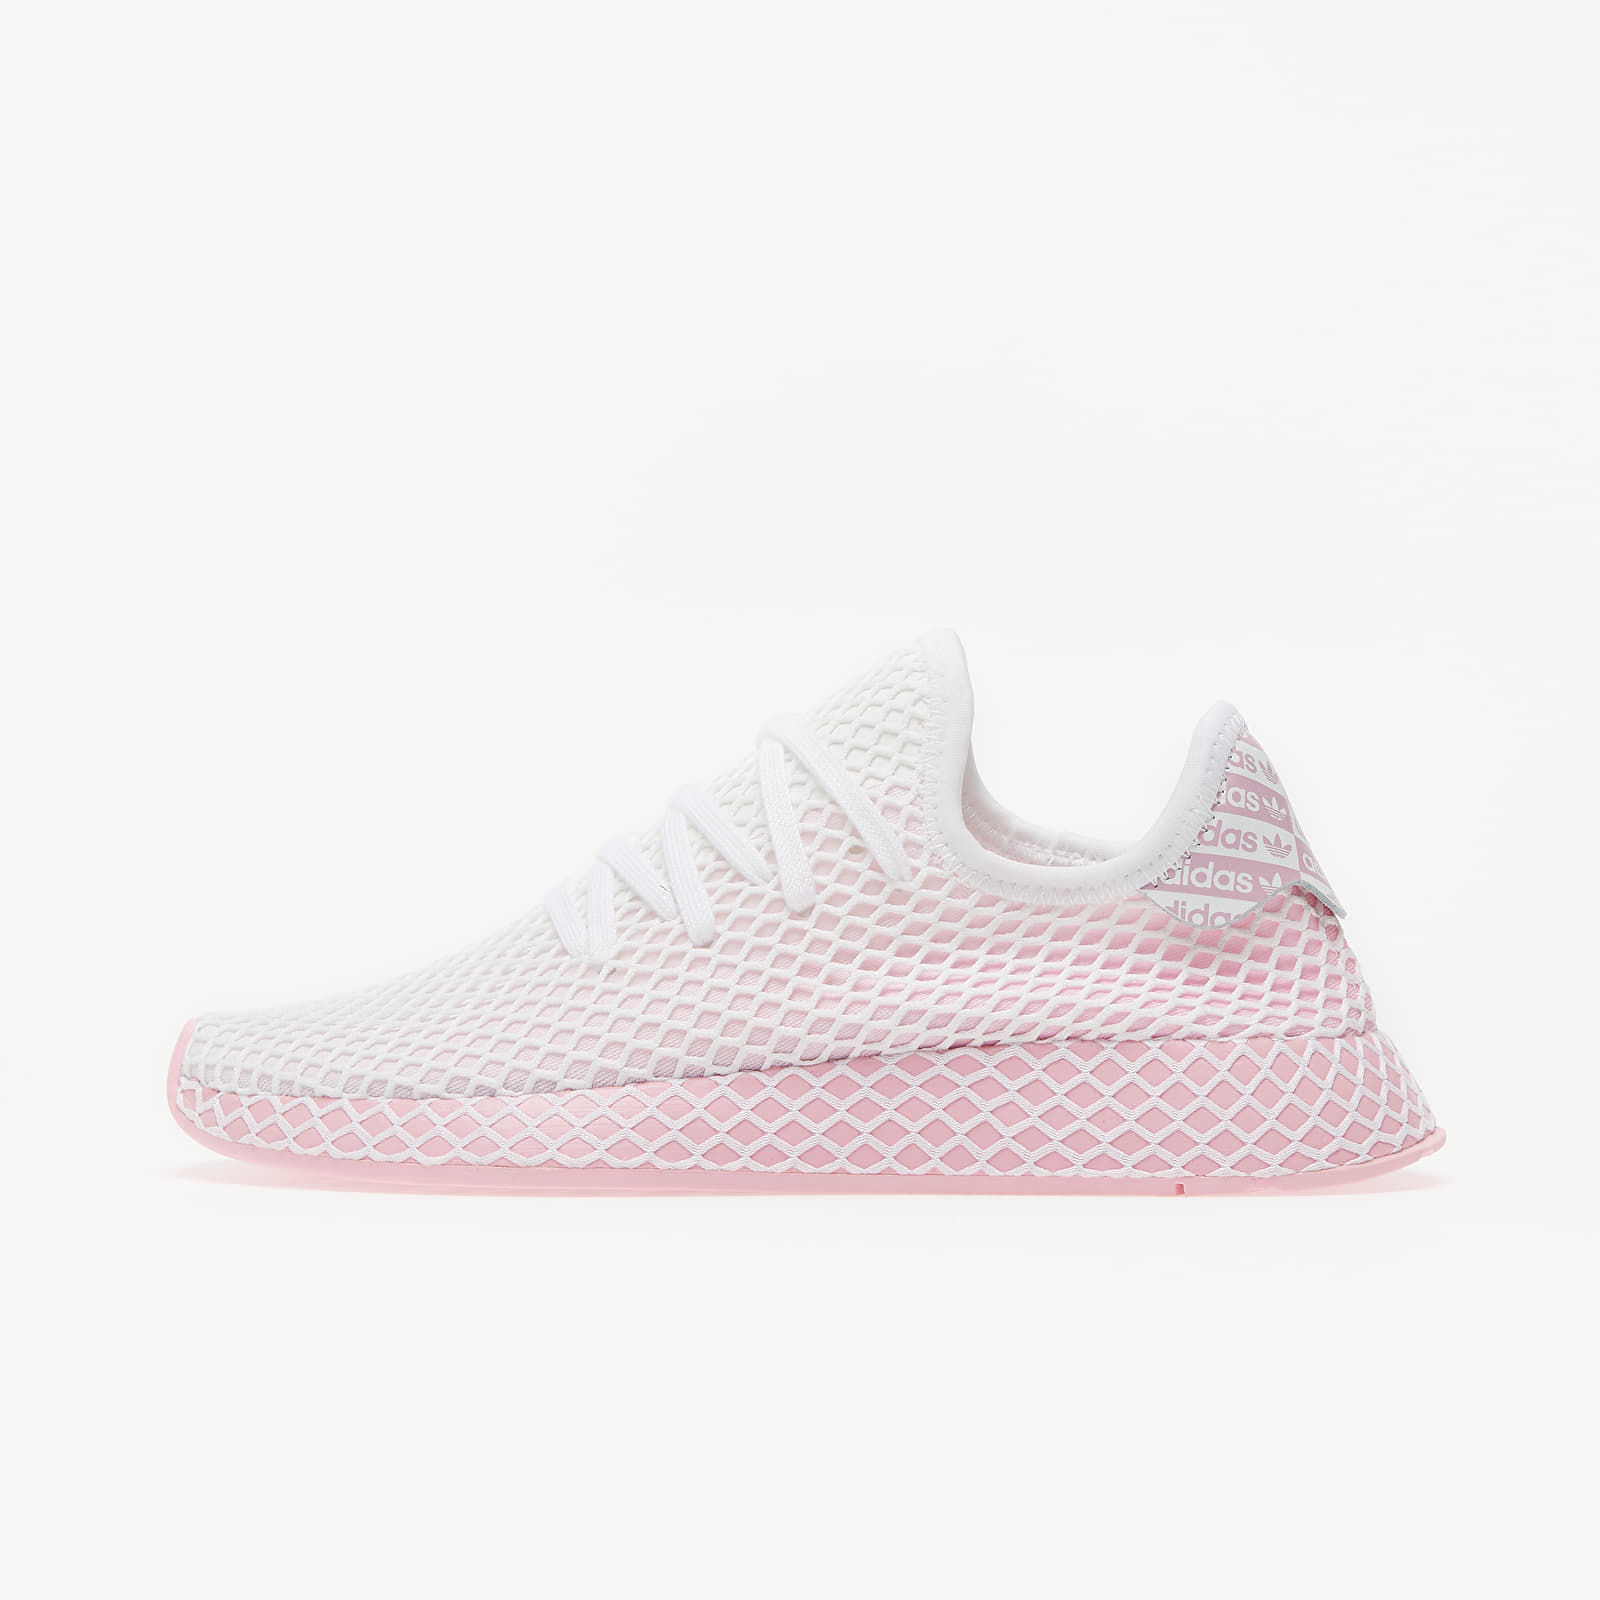 Women's shoes adidas Deerupt Runner W True Pink/ True Pink/ Ftw White